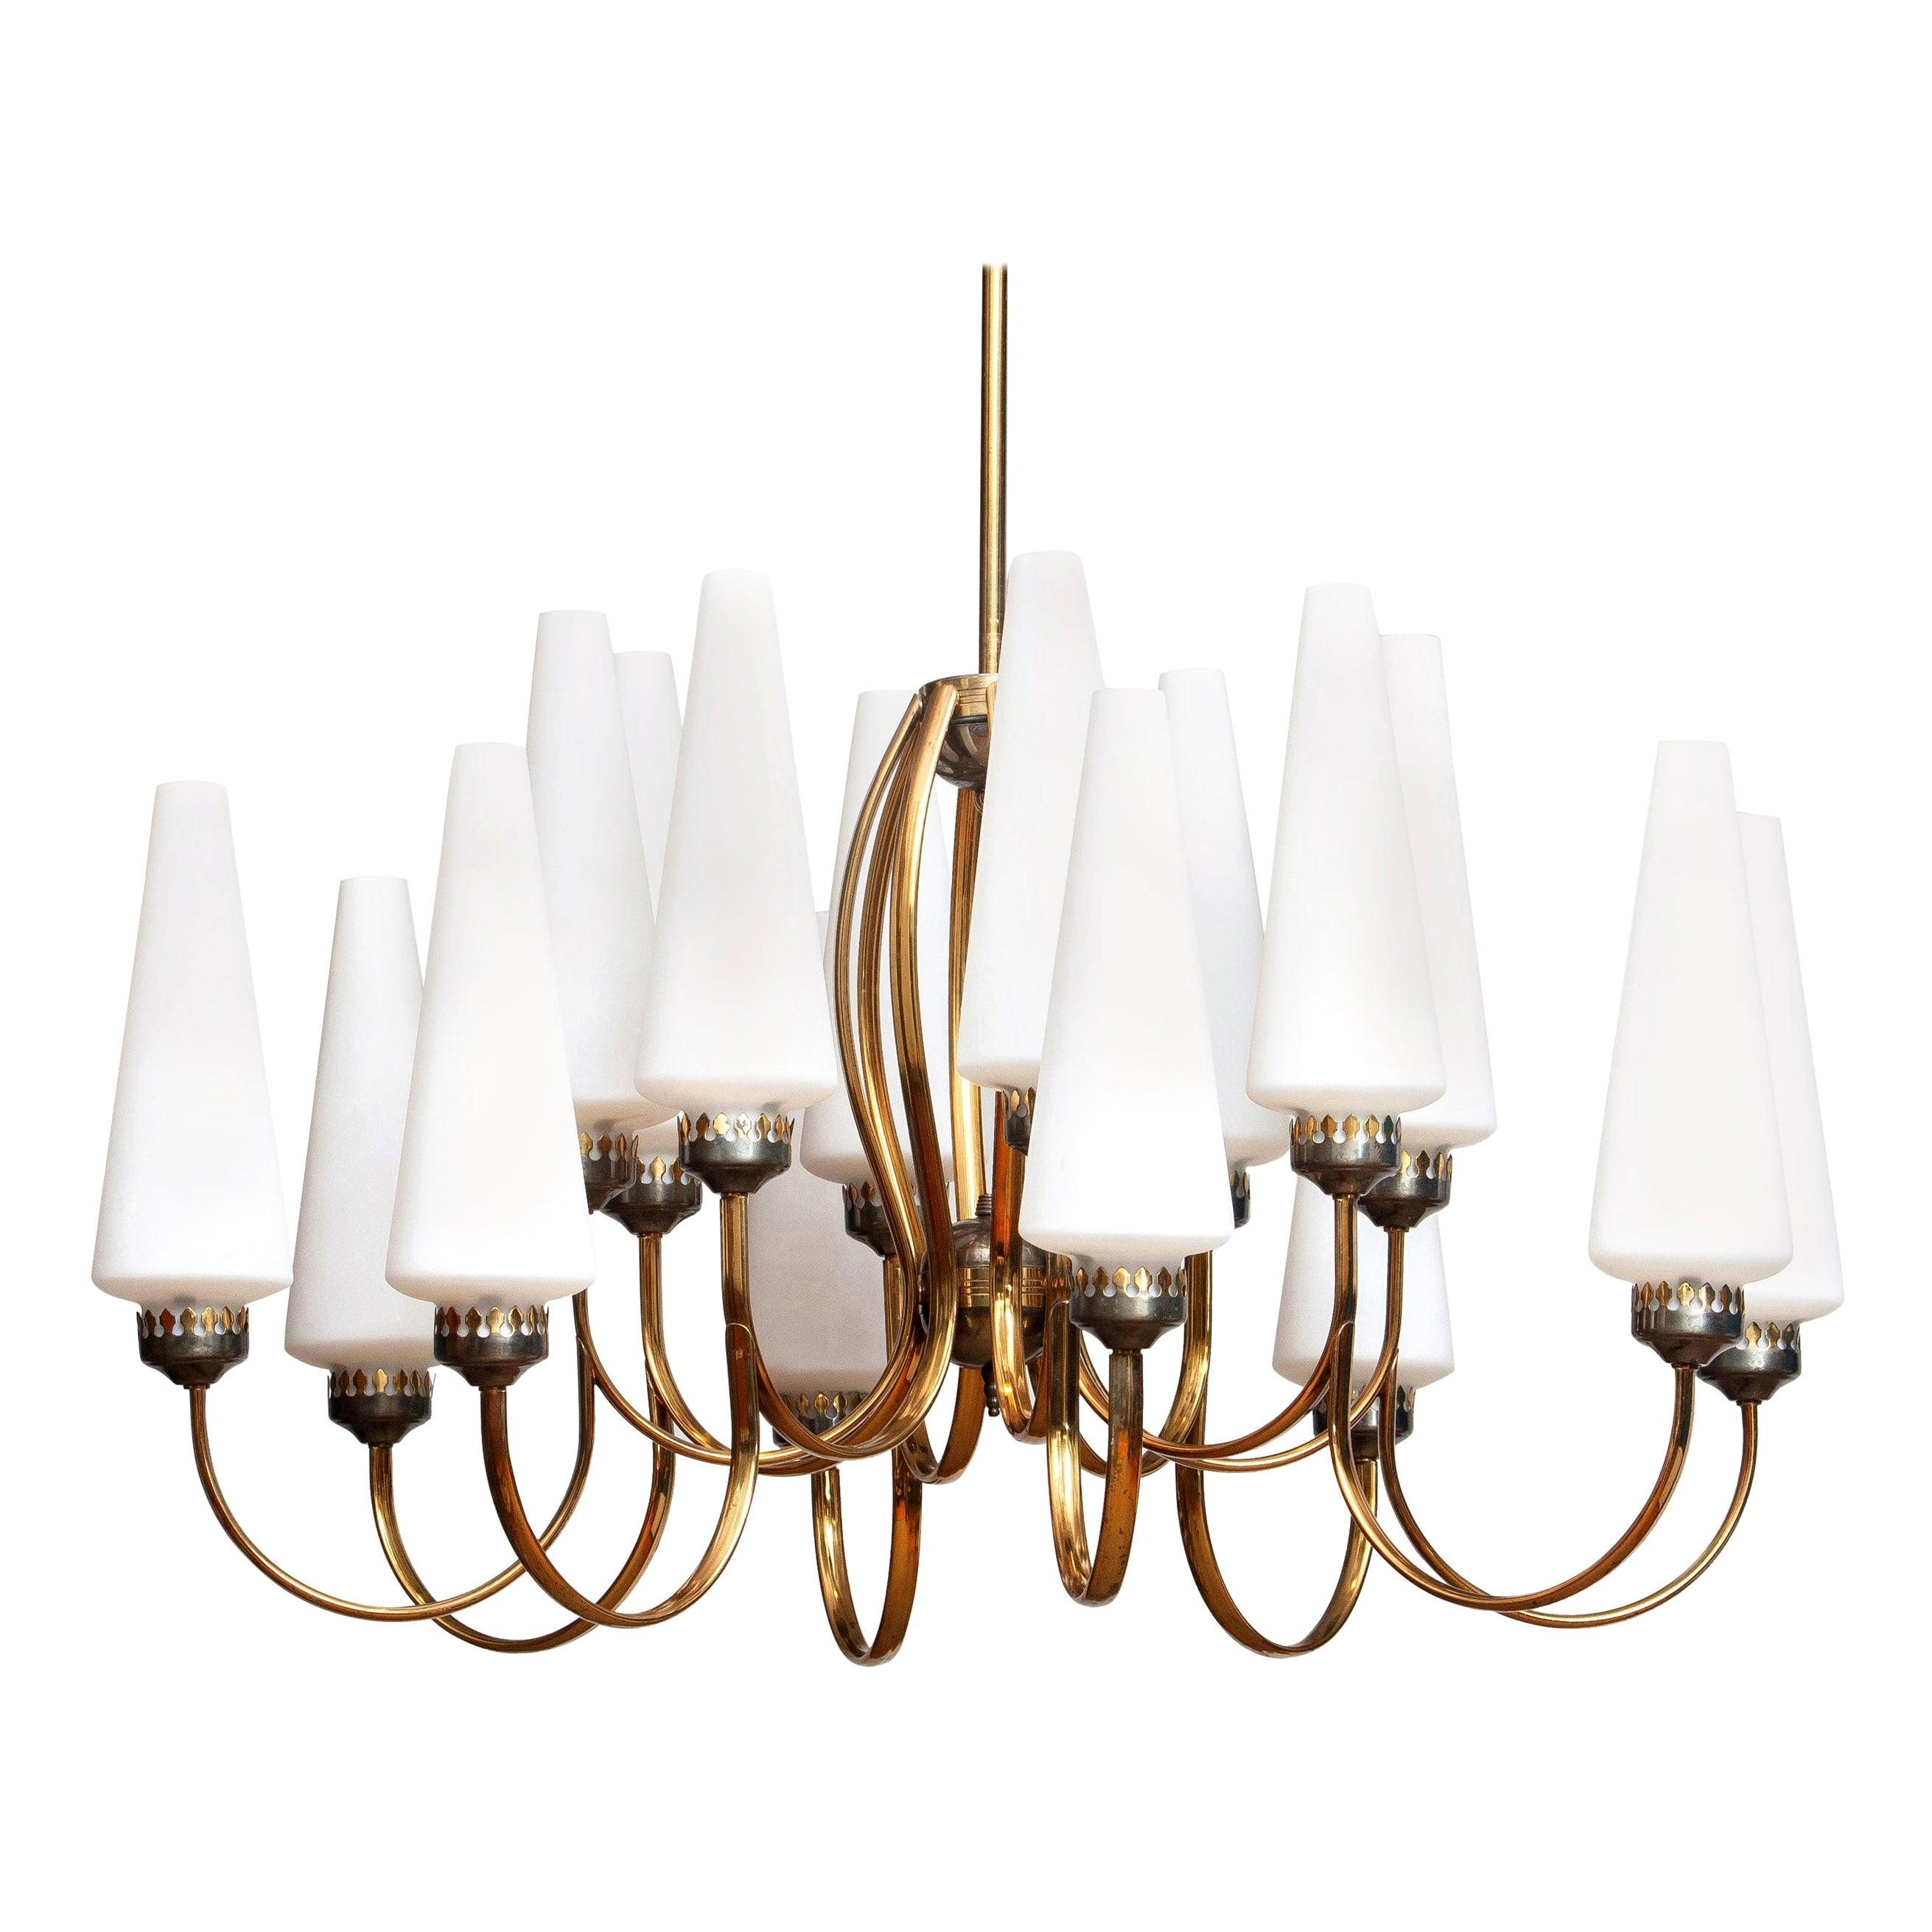 1950s, Large Brass Chandelier with Large White Murano Glass Vases, Italy